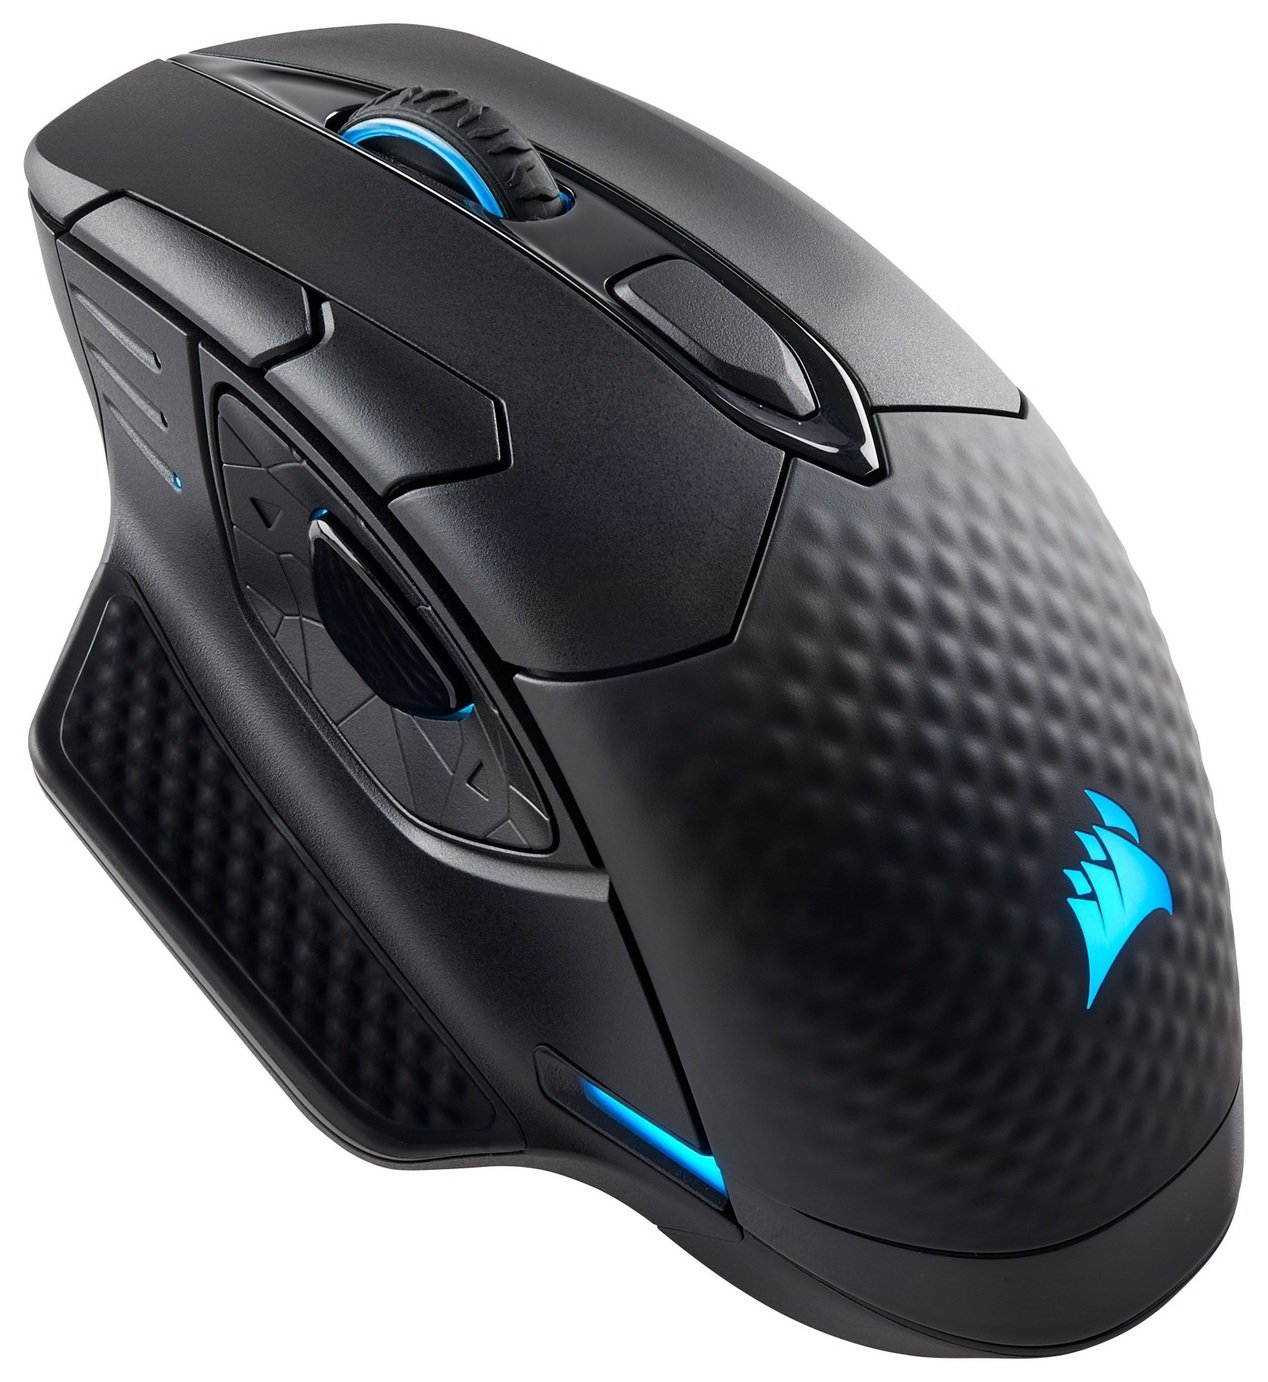 Corsair Gaming RGB SE Dark Core Wireless Mouse review